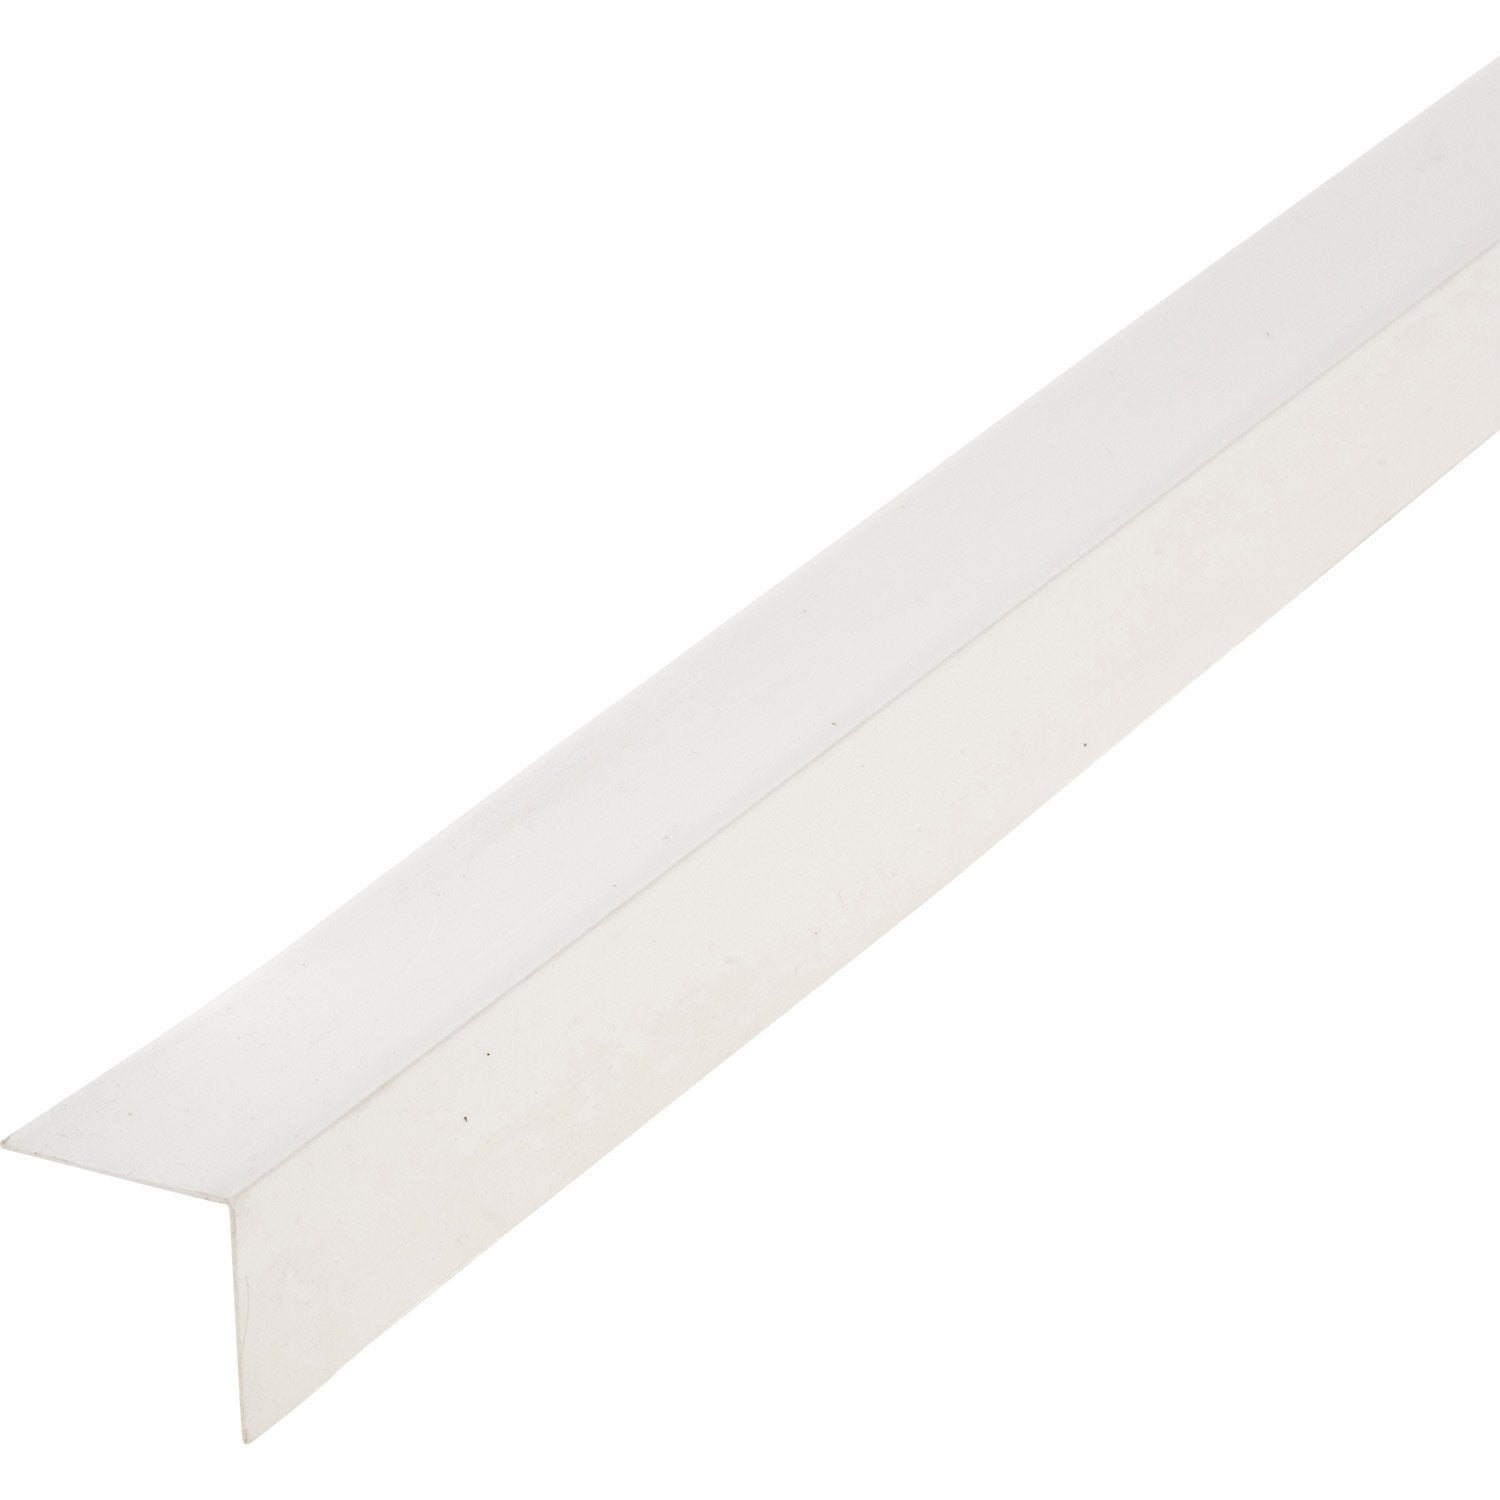 Corni re pvc blanc 50 x 50 mm l 2 6 m leroy merlin for Montaggio finestre pvc leroy merlin